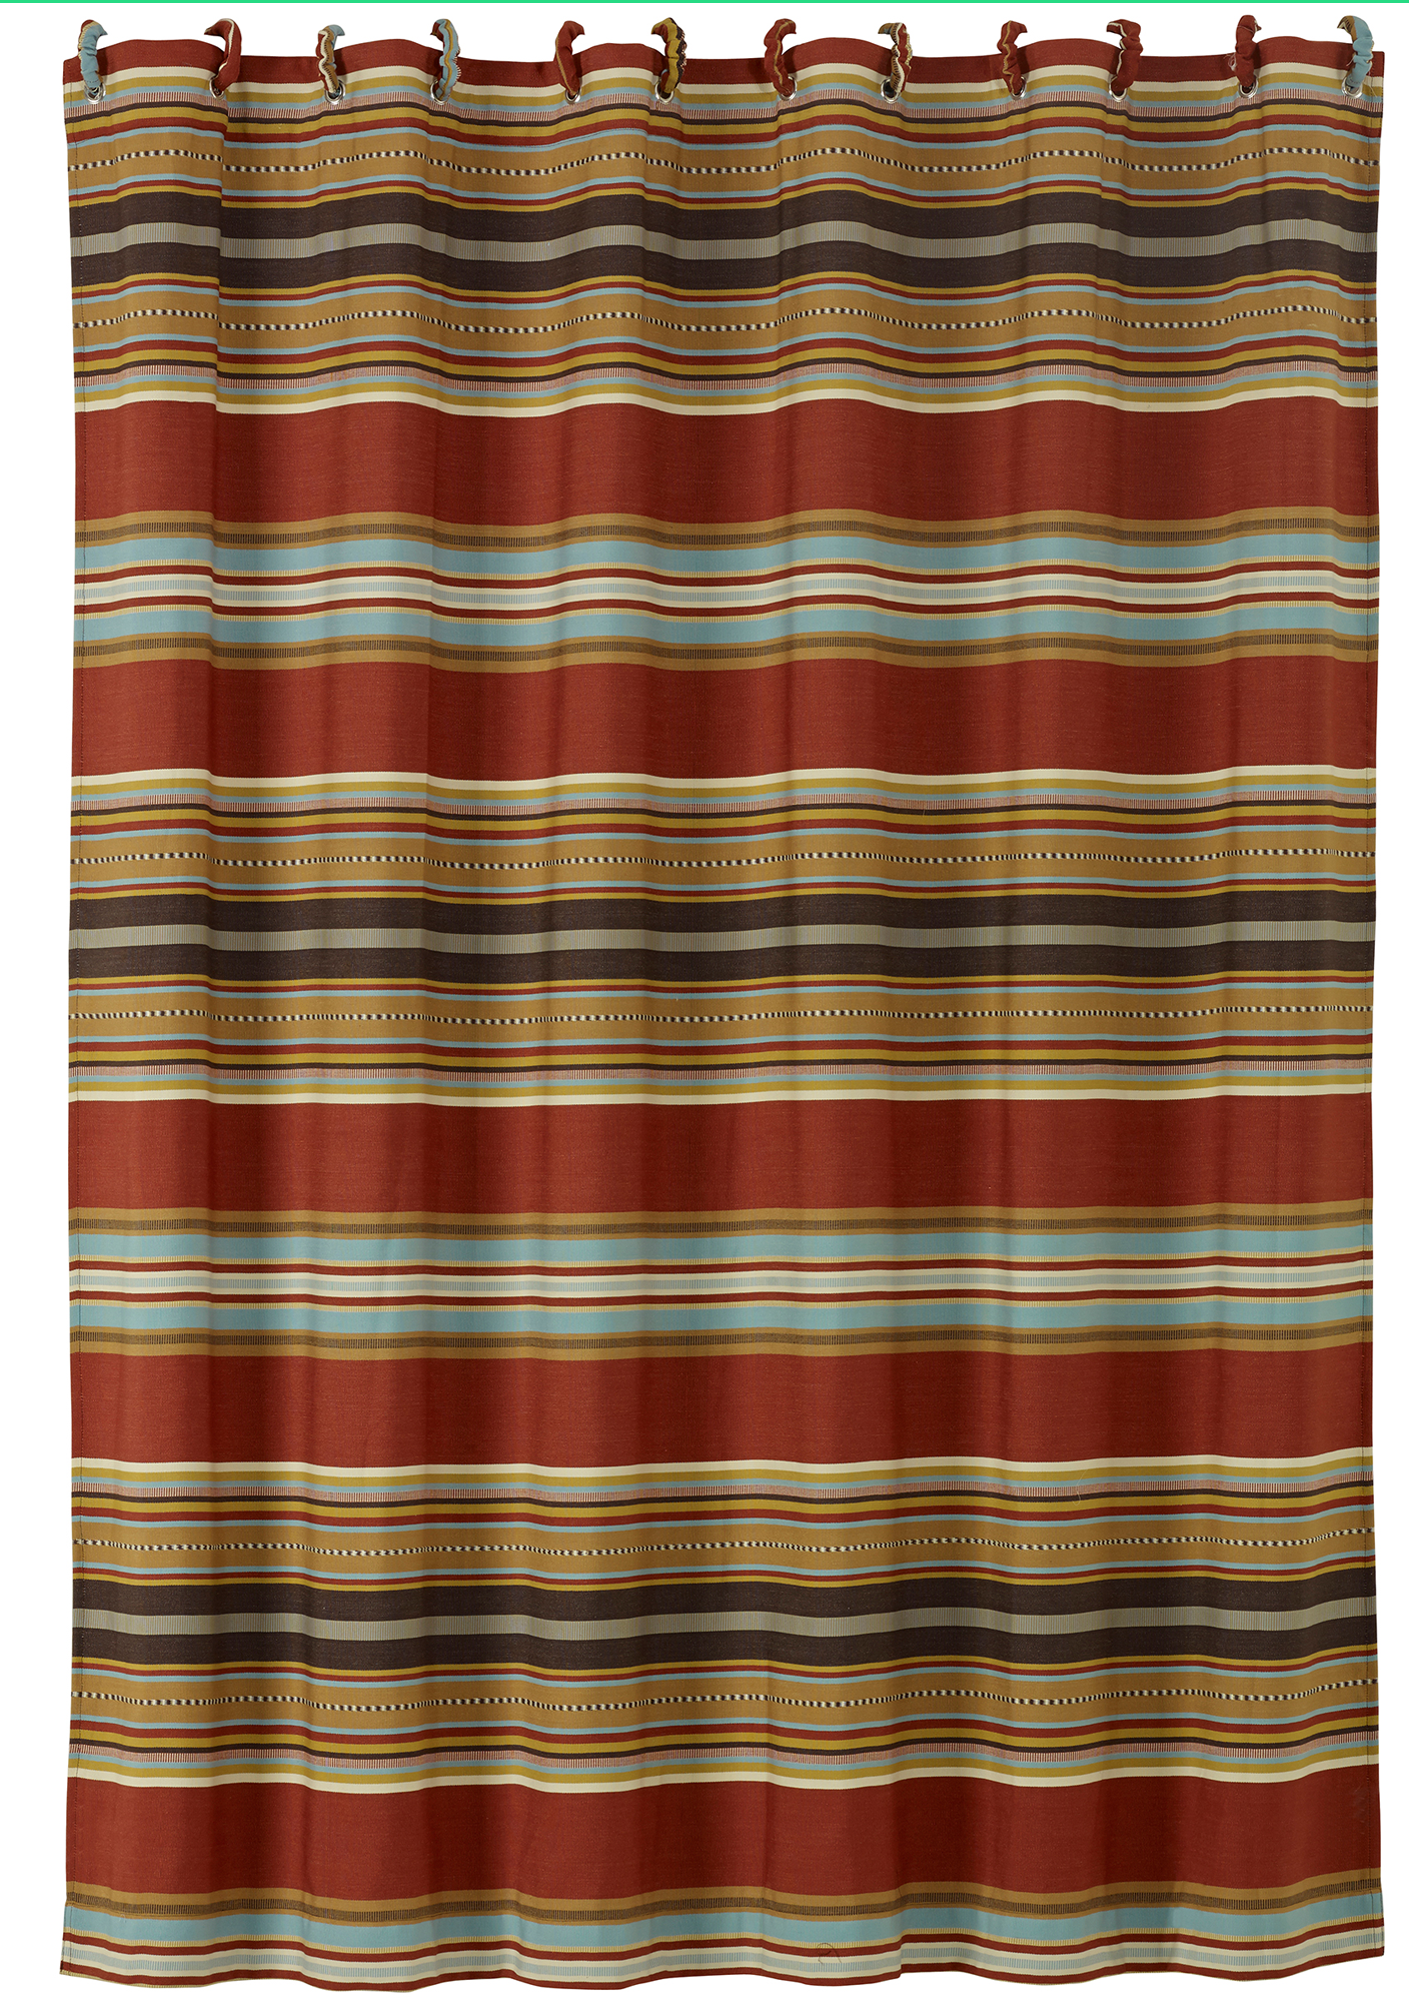 Ws4060sc Striped Shower Curtain Western Bedding By Hiend Accents